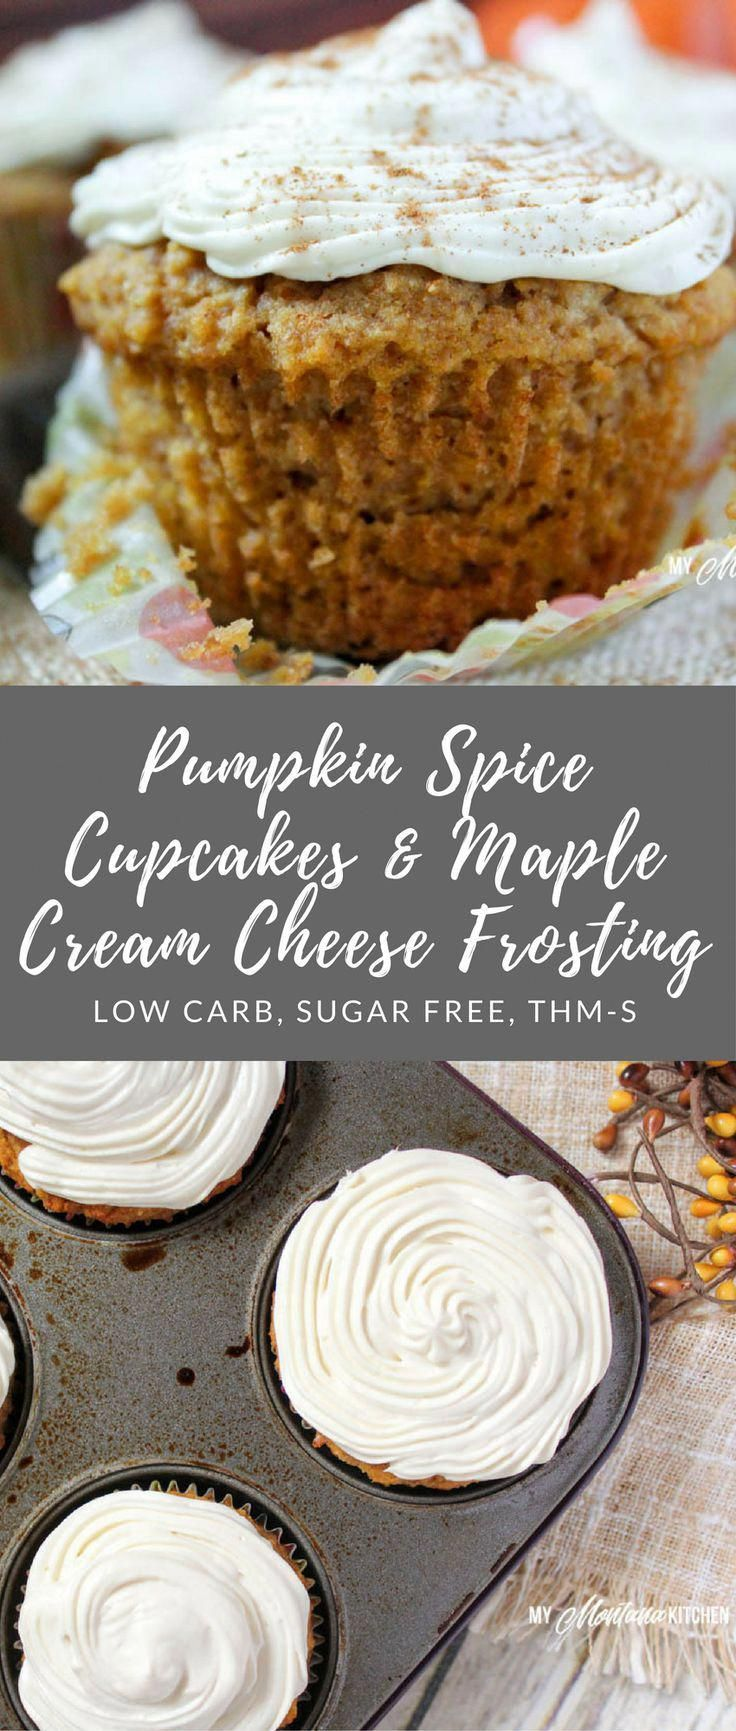 Pumpkin Spice Cupcakes with Maple Cream Cheese Frosting (Low Carb, Sugar Free, THM-S)